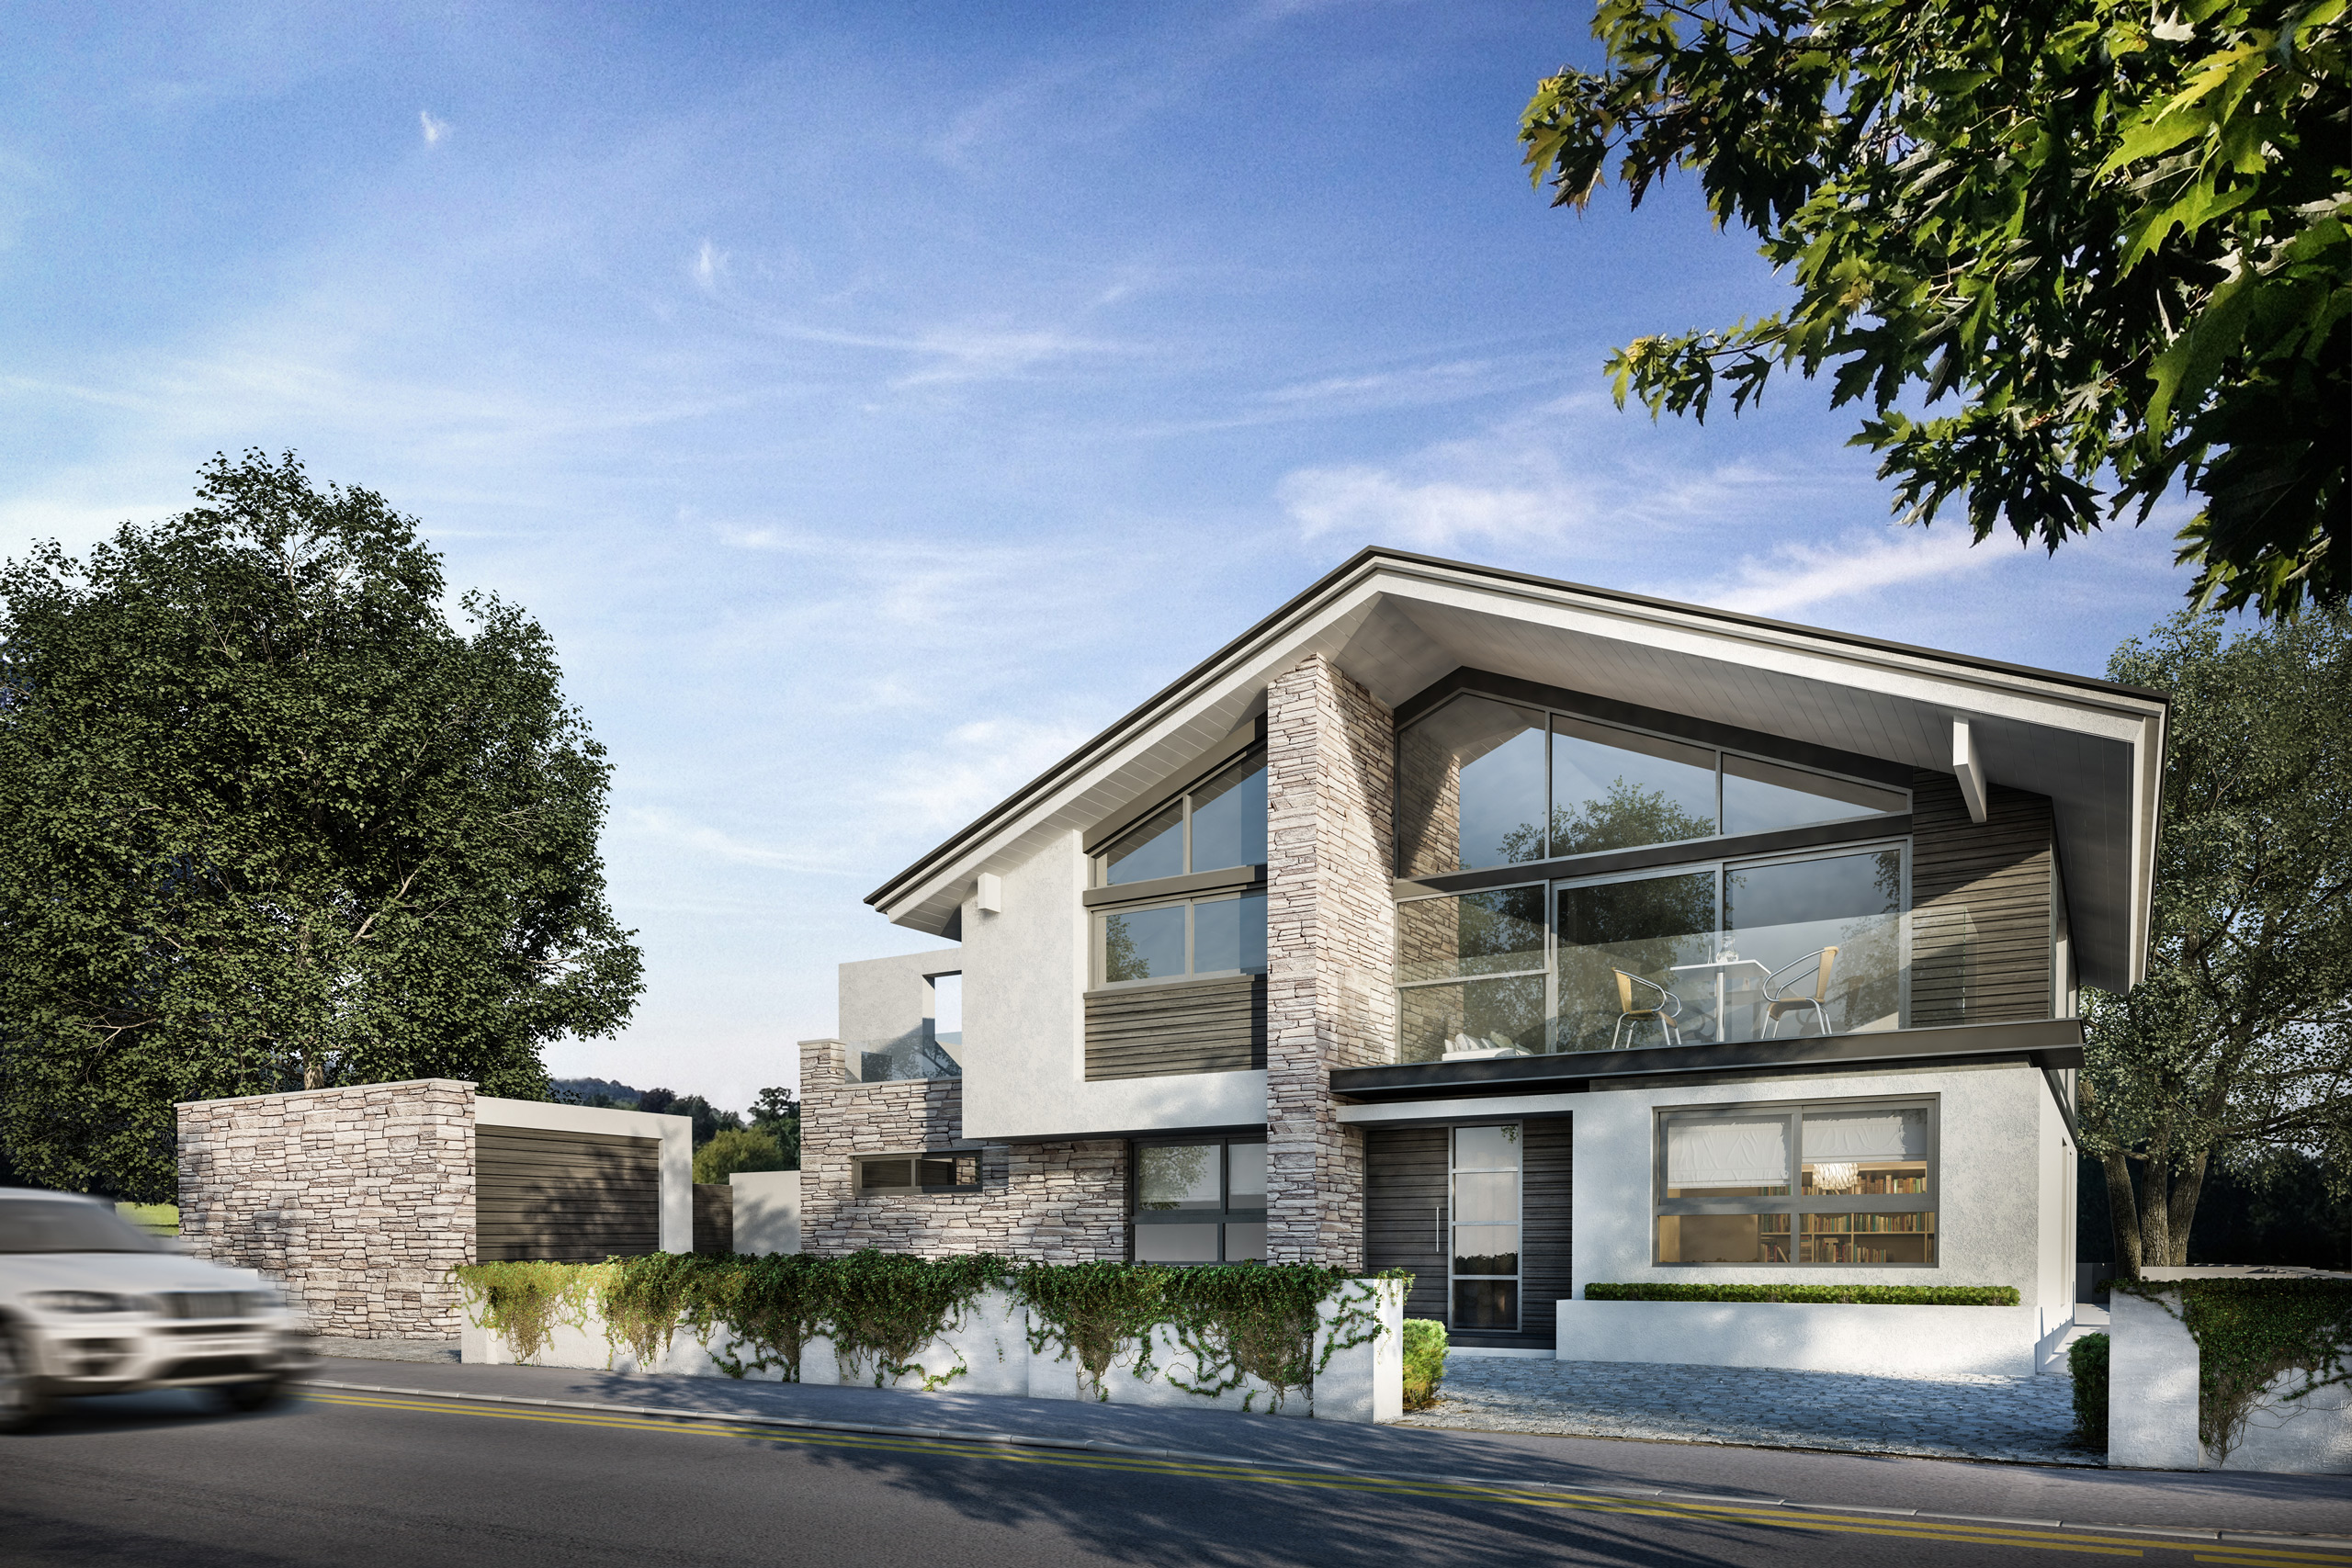 3d-Architectural-visualisation-Dorset-London-Tony-Holt-Design-Wick-Lane